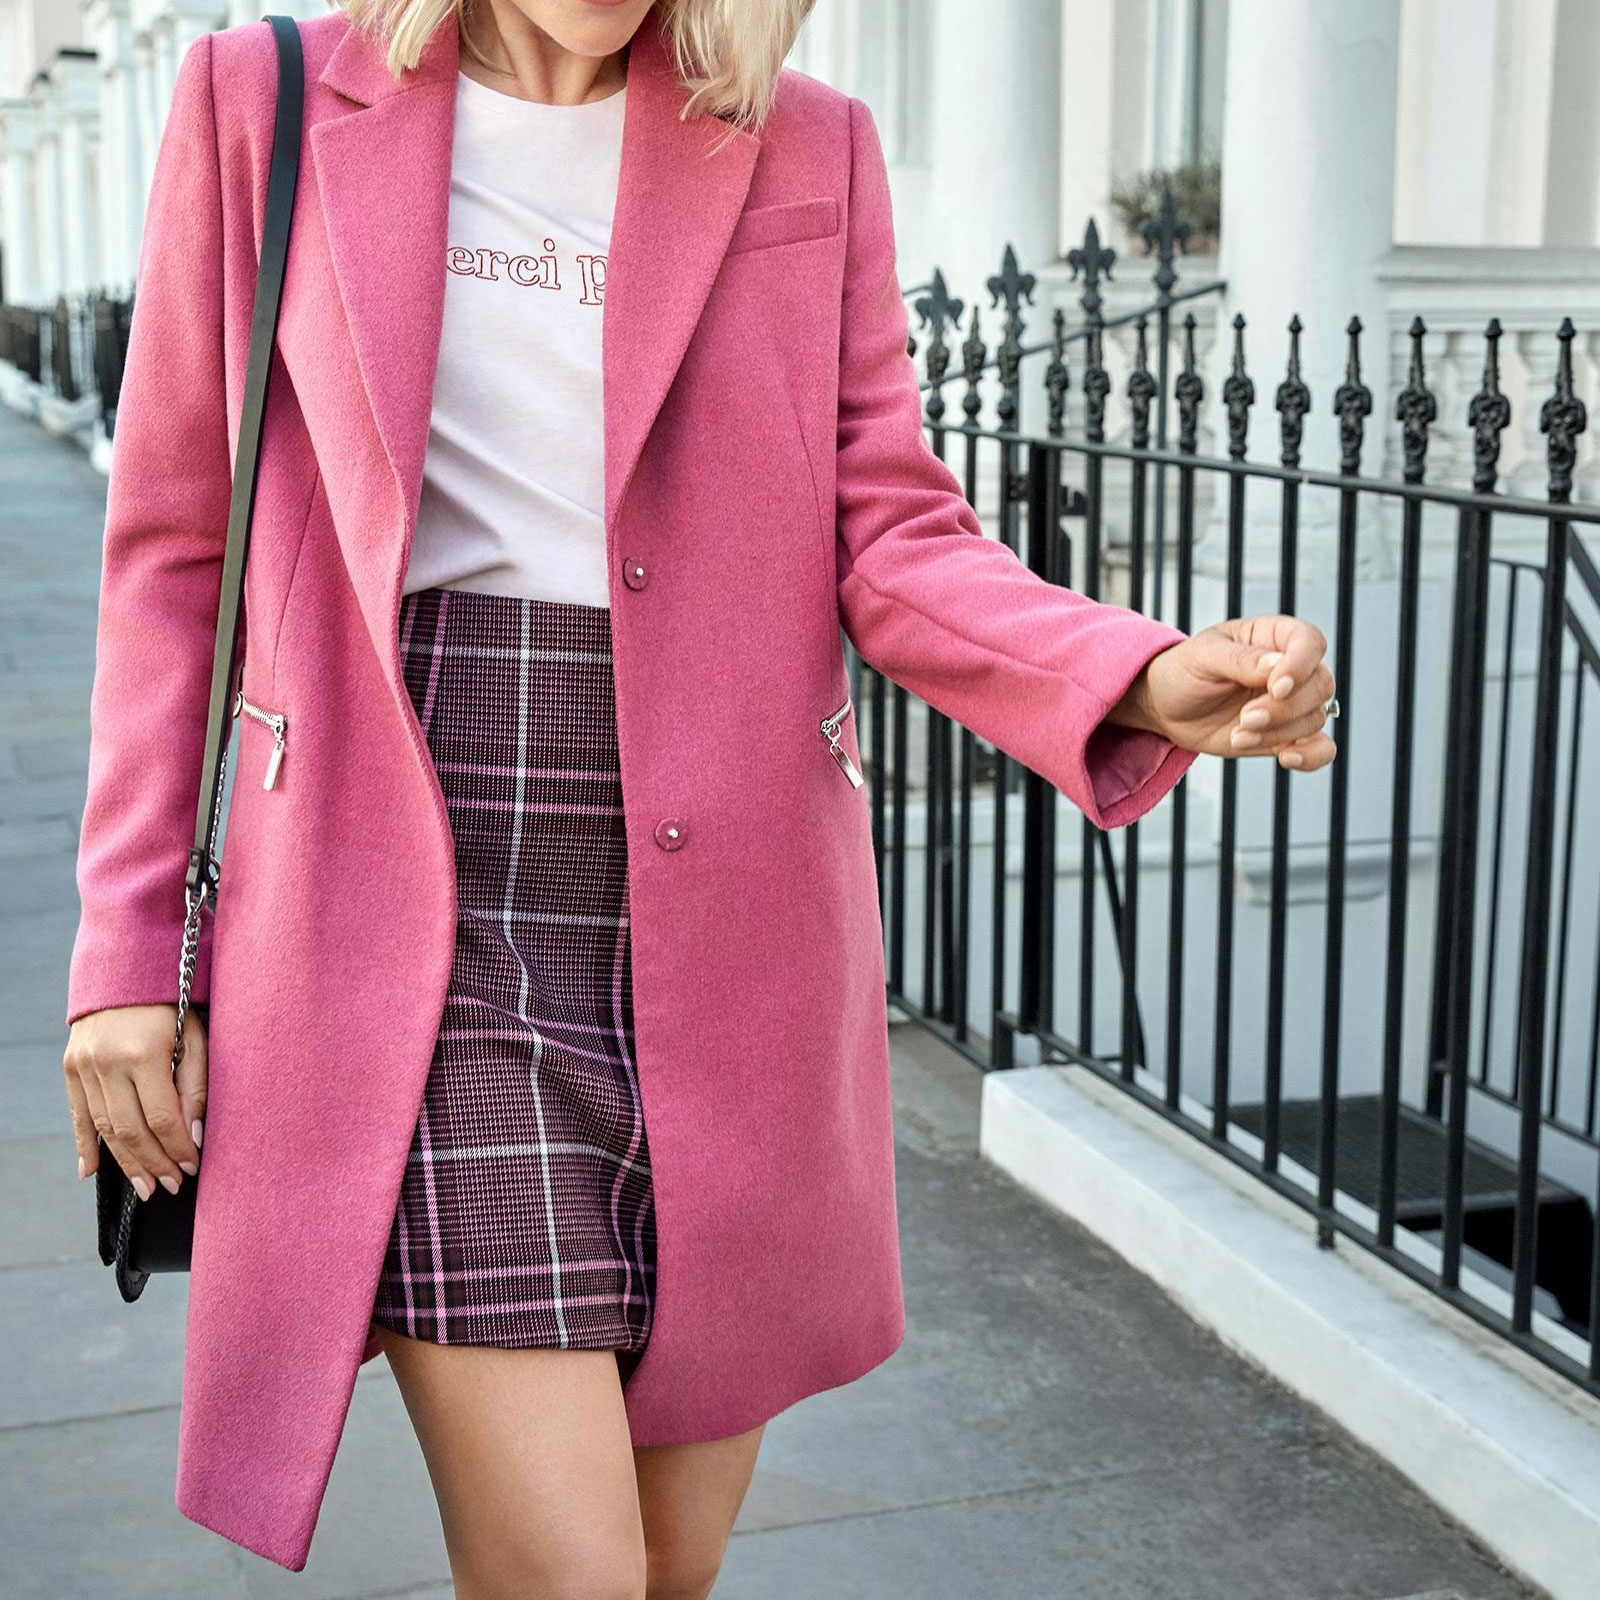 M-amp-S-Wool-Blend-Single-Breasted-Pink-Brown-Winter-Coat-Holly-Willoughby-Size-6-24 thumbnail 45